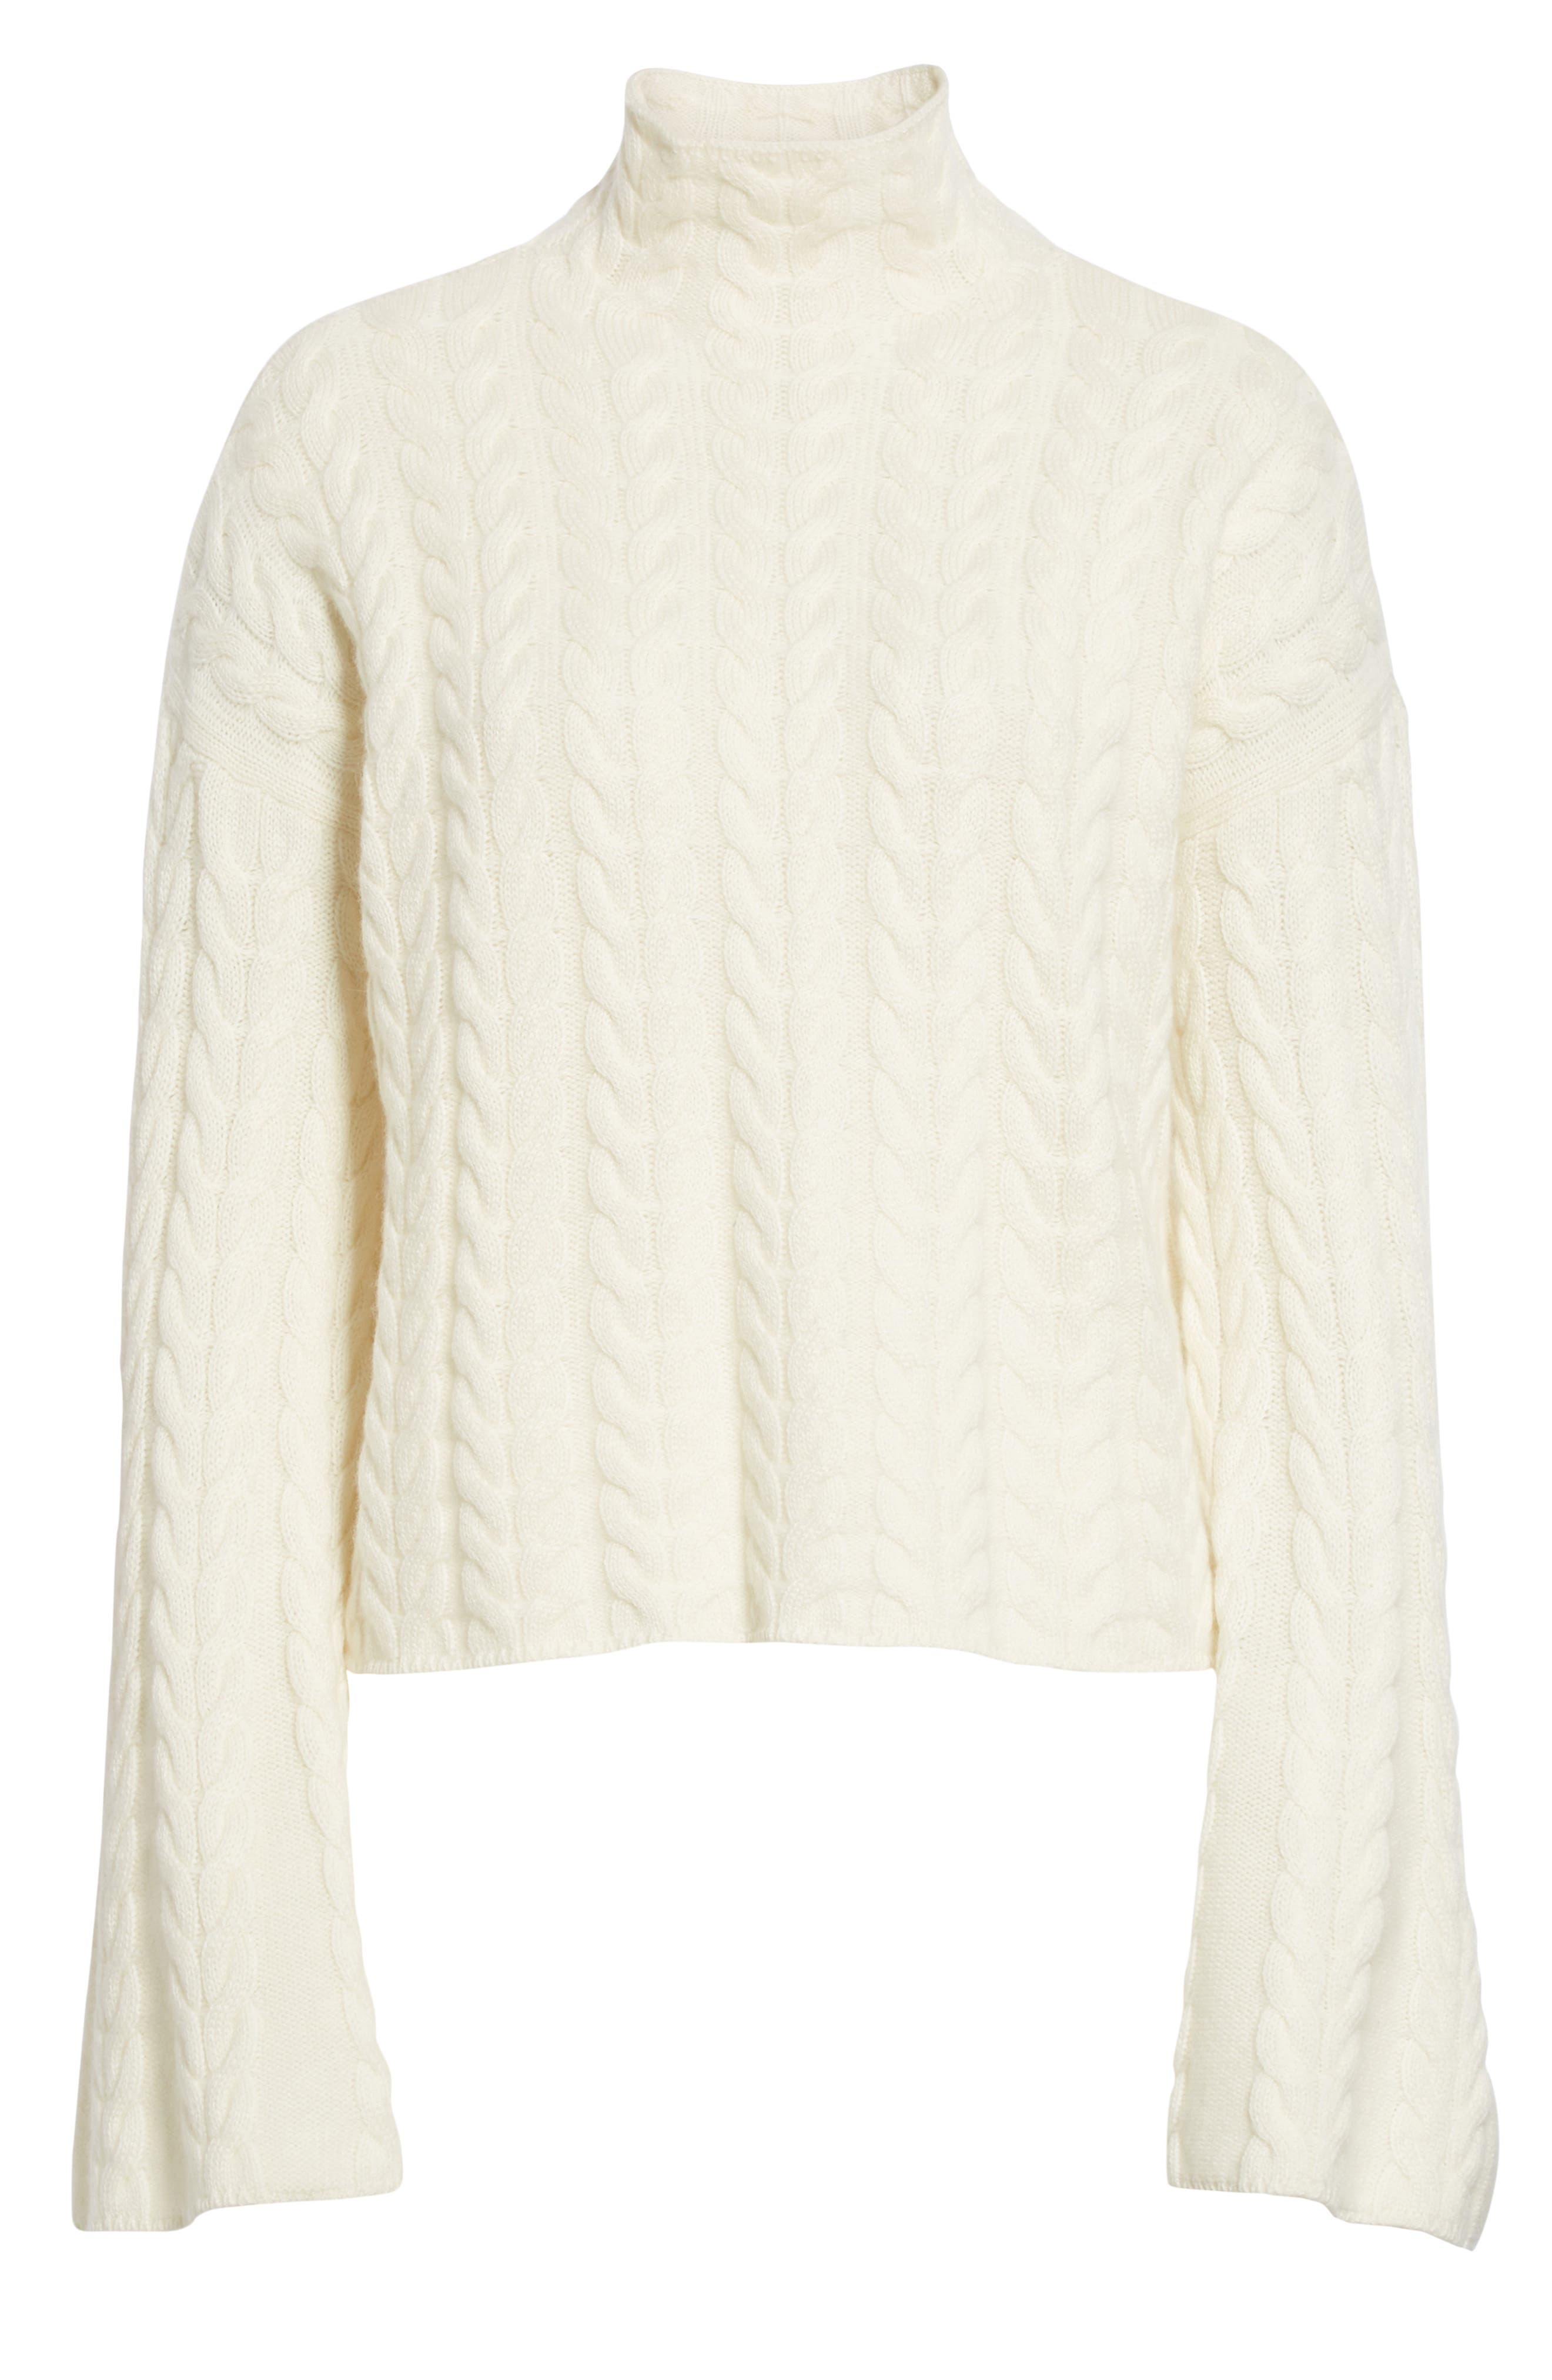 Cable Cashmere Sweater,                             Alternate thumbnail 6, color,                             IVORY/ IVORY